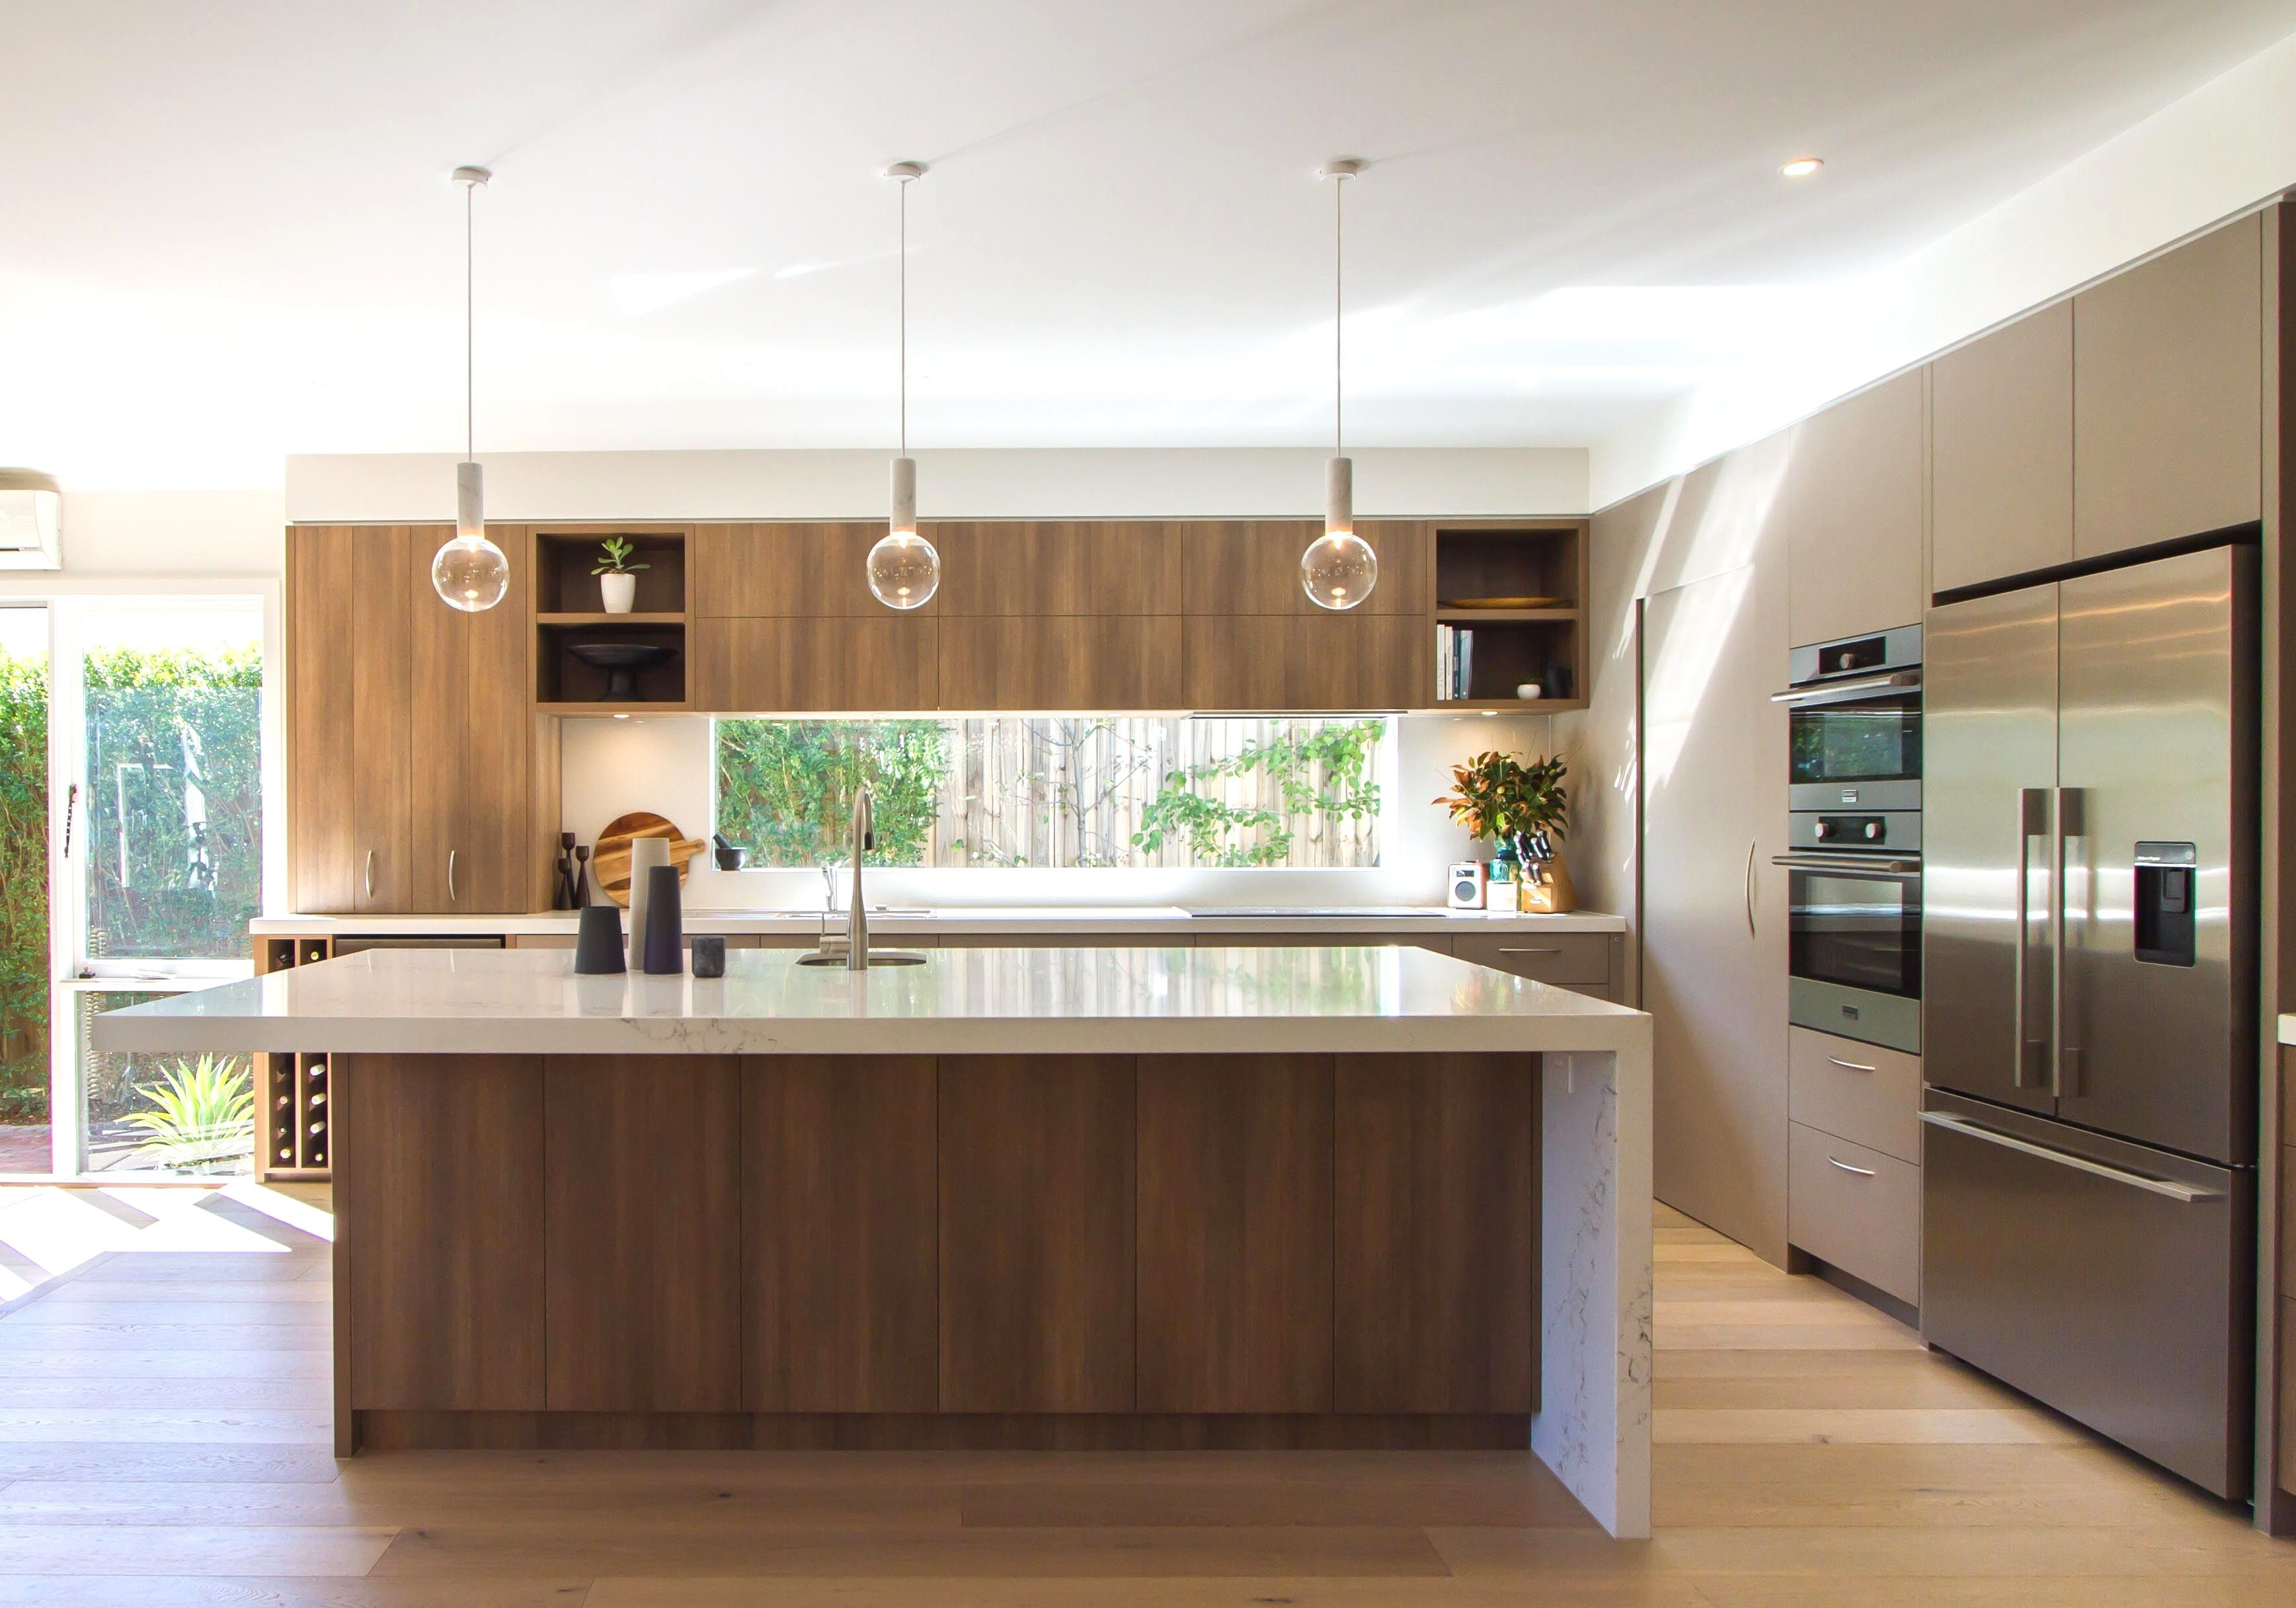 Large, Modern, Contemporary Kitchen In Warm Tones With A